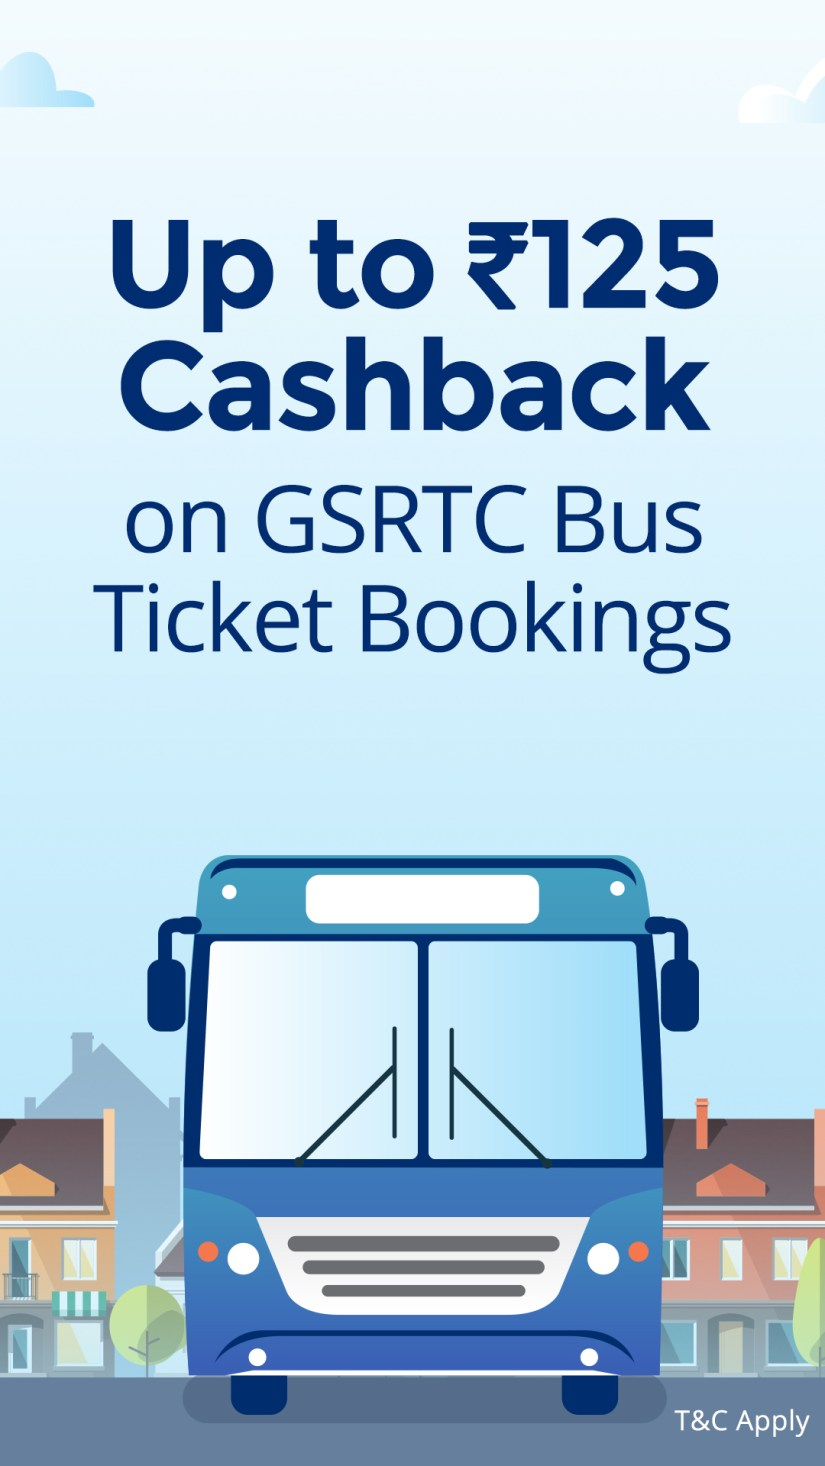 Up to Rs. 125 Cashback on bus ticket booking